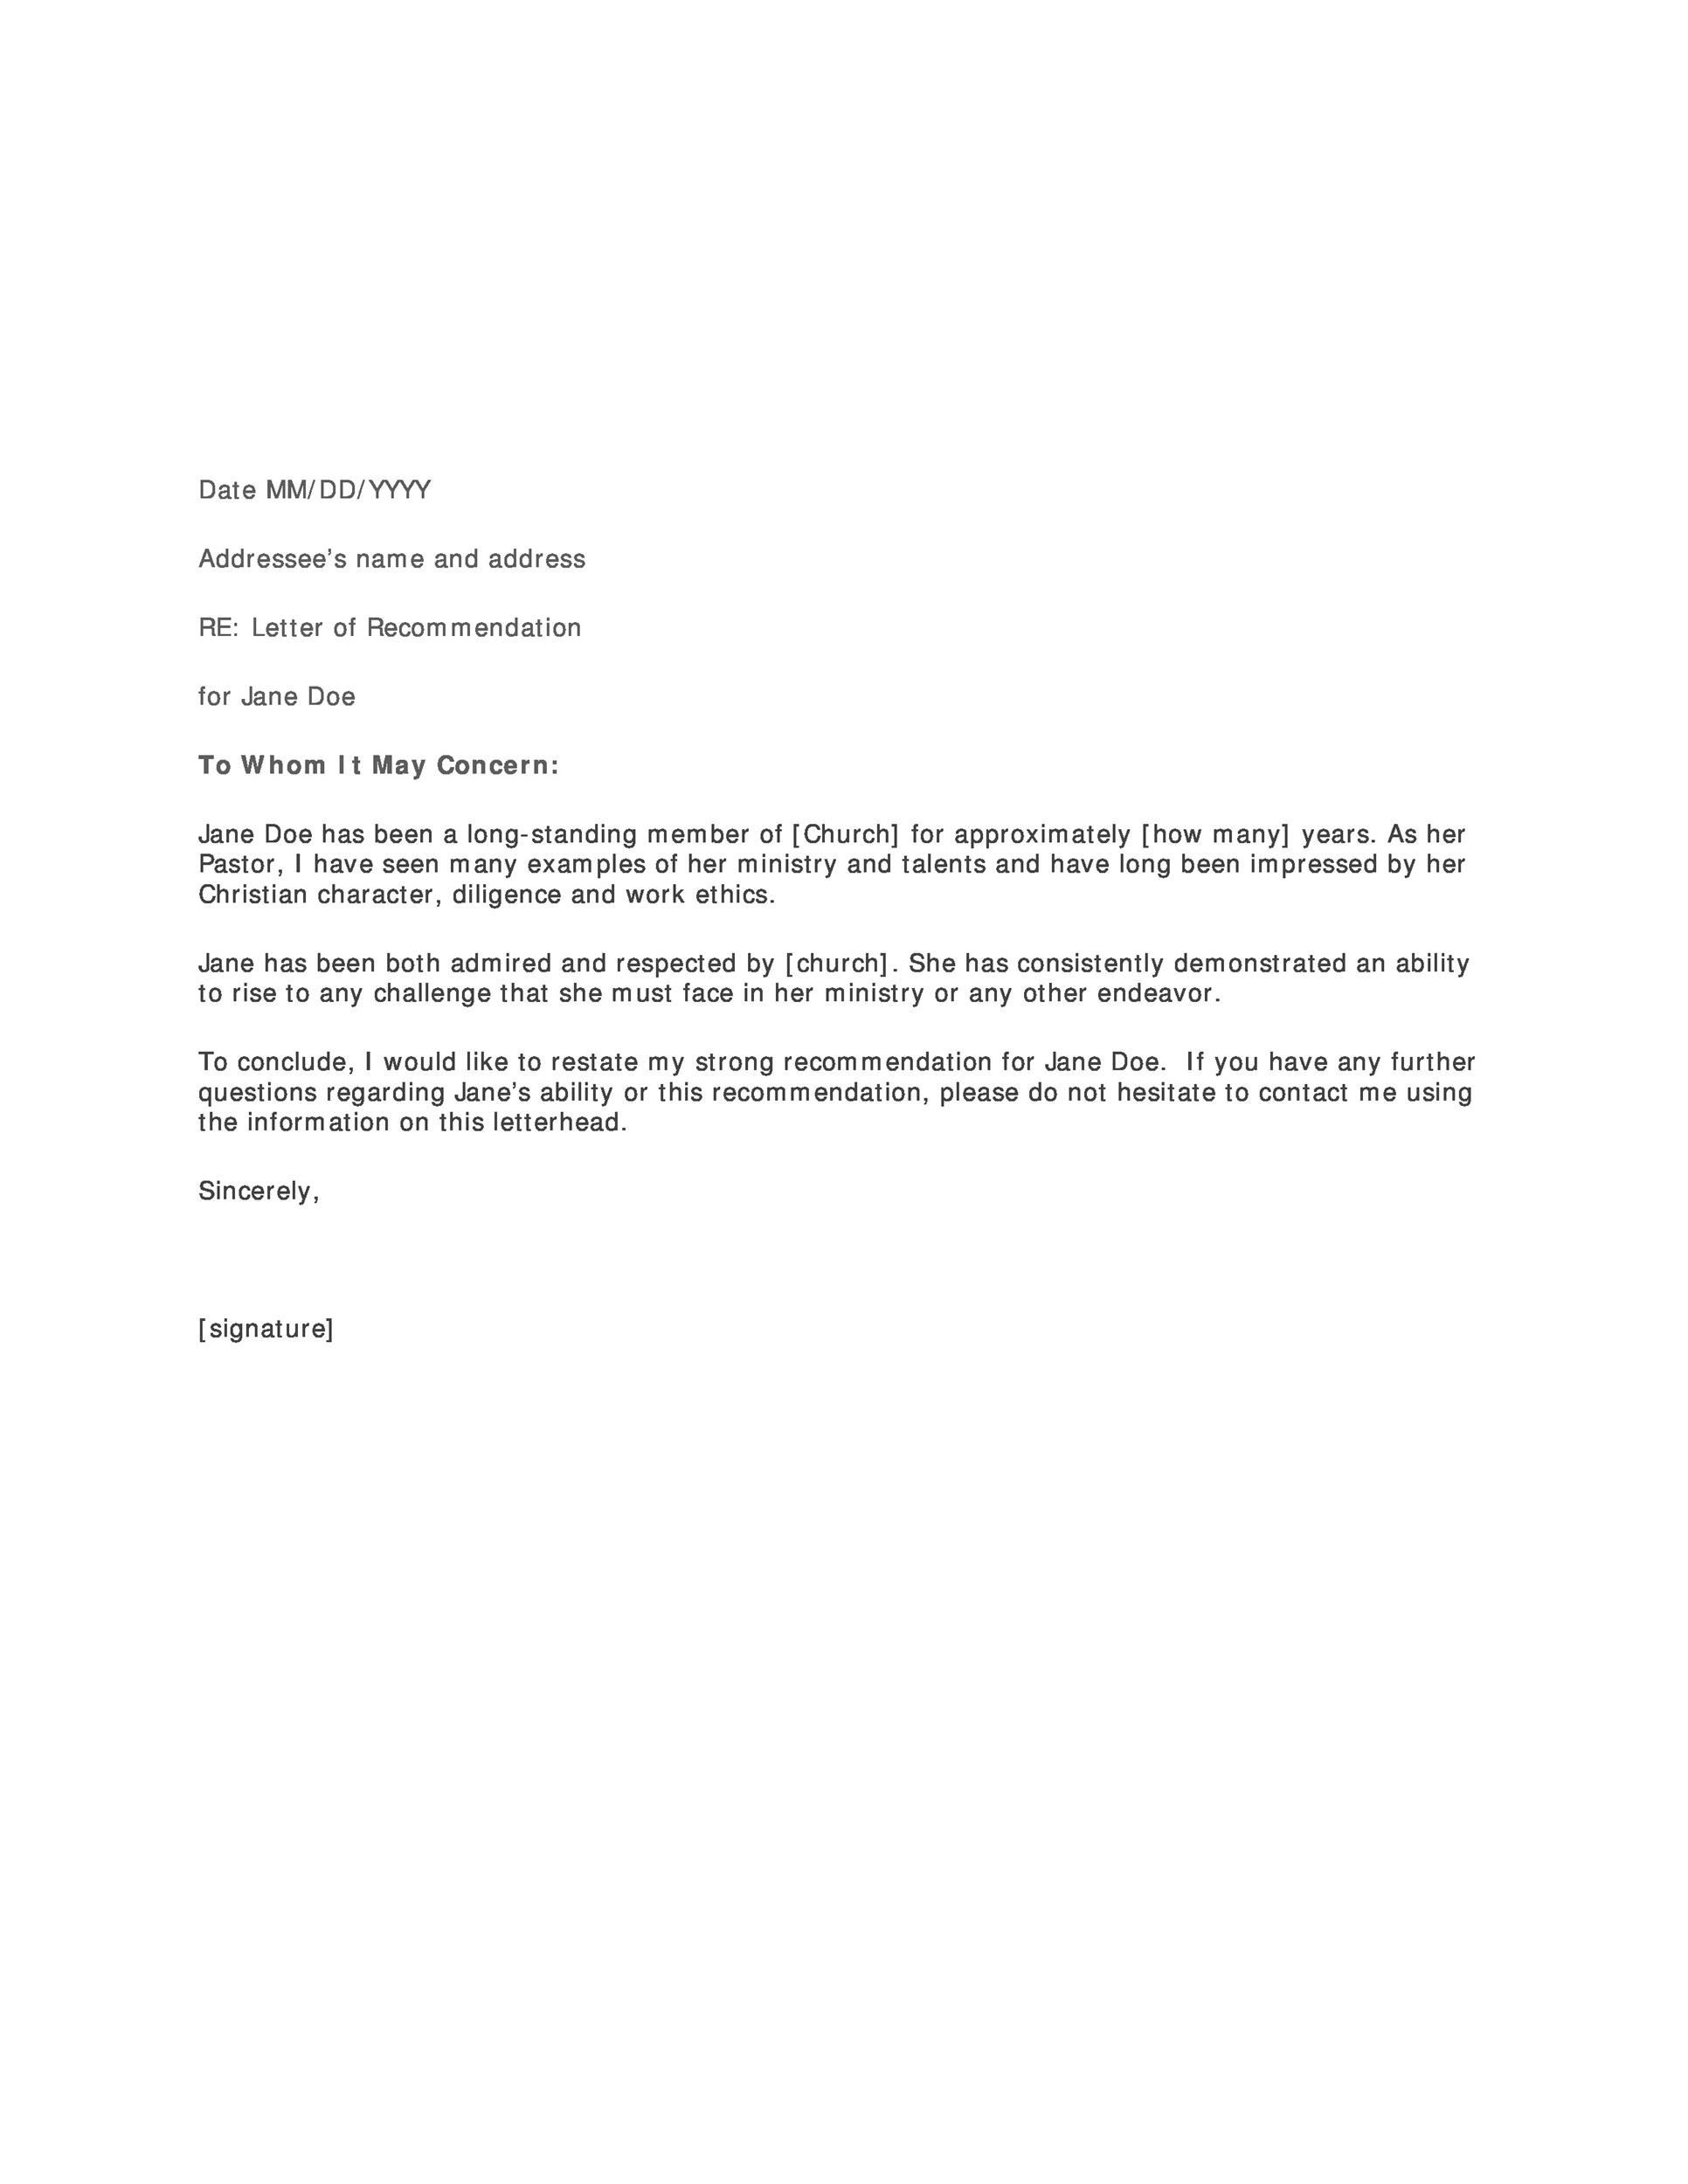 Letter Of Recommendation Template The Balance 43 Free Letter Of Recommendation Templates And Samples